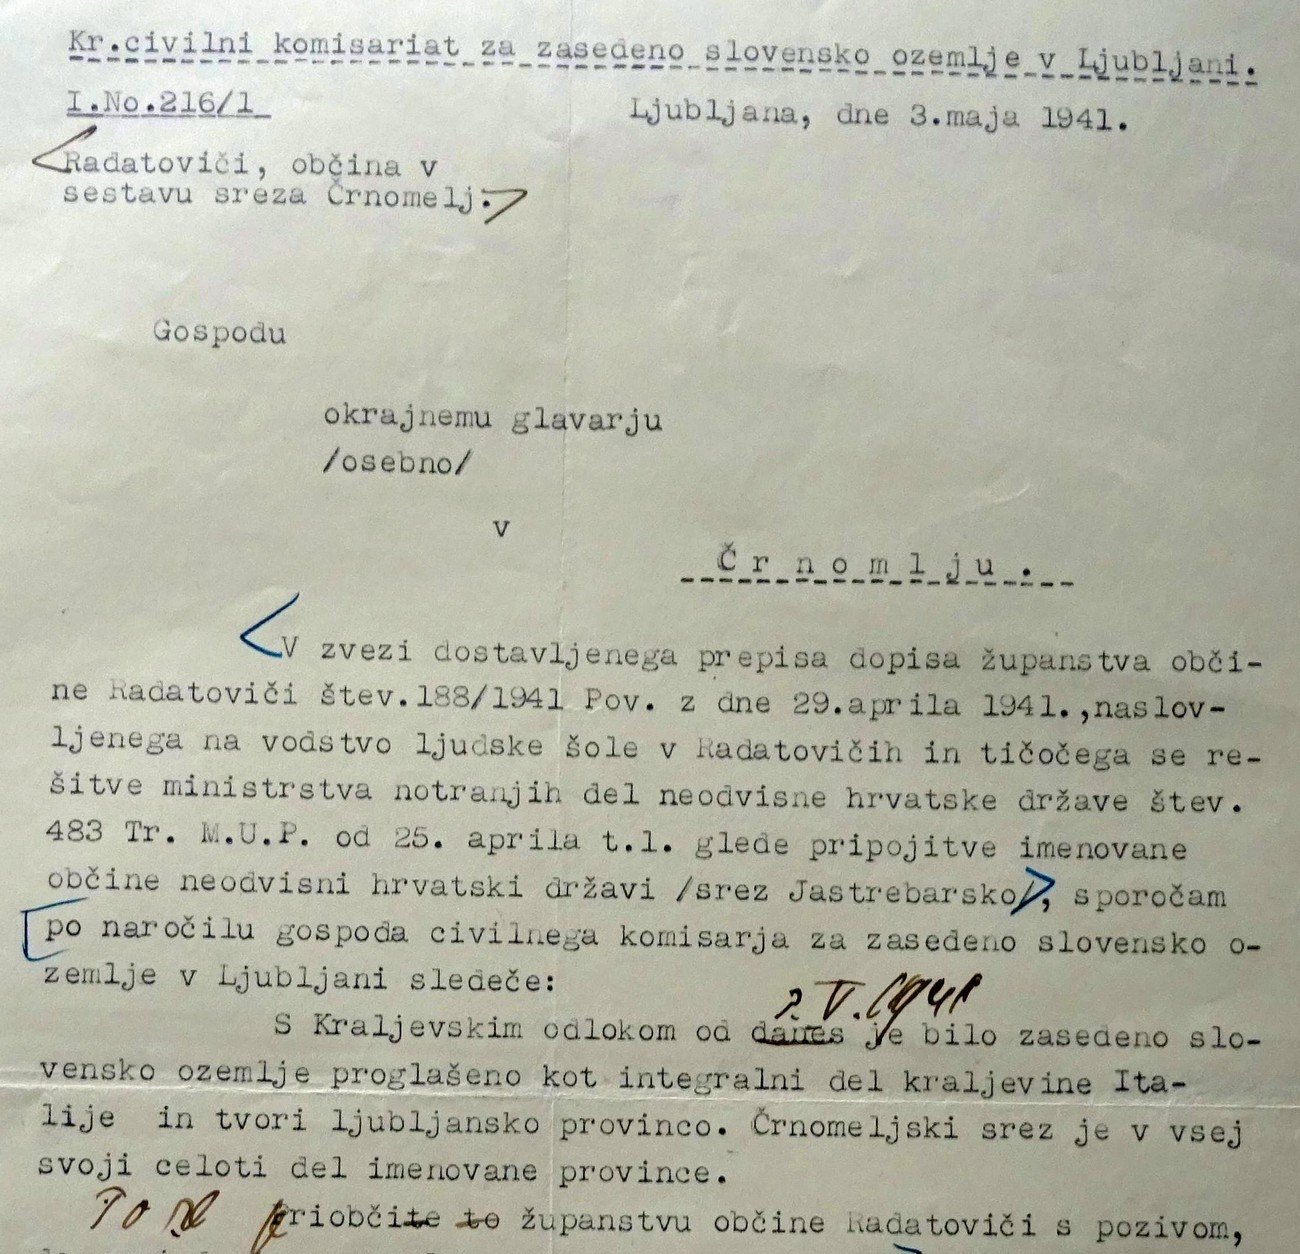 The Royal Civilian Commissariat of the Occupied Slovene Territory replied to the district governor in Črnomelj on 3 May 1941 that by decree »the occupied Slovene territory has been declared an integral part of the Kingdom of Italy and makes up the Province of Ljubljana. The entire Črnomelj srez constitutes a part of the aforementioned province.« Archives of the RS. It seems that the Radatovići affair ended with that, even though there were complications with the Boundary Commission which was to demarcate the boundary between Italy and the NDH in the field.